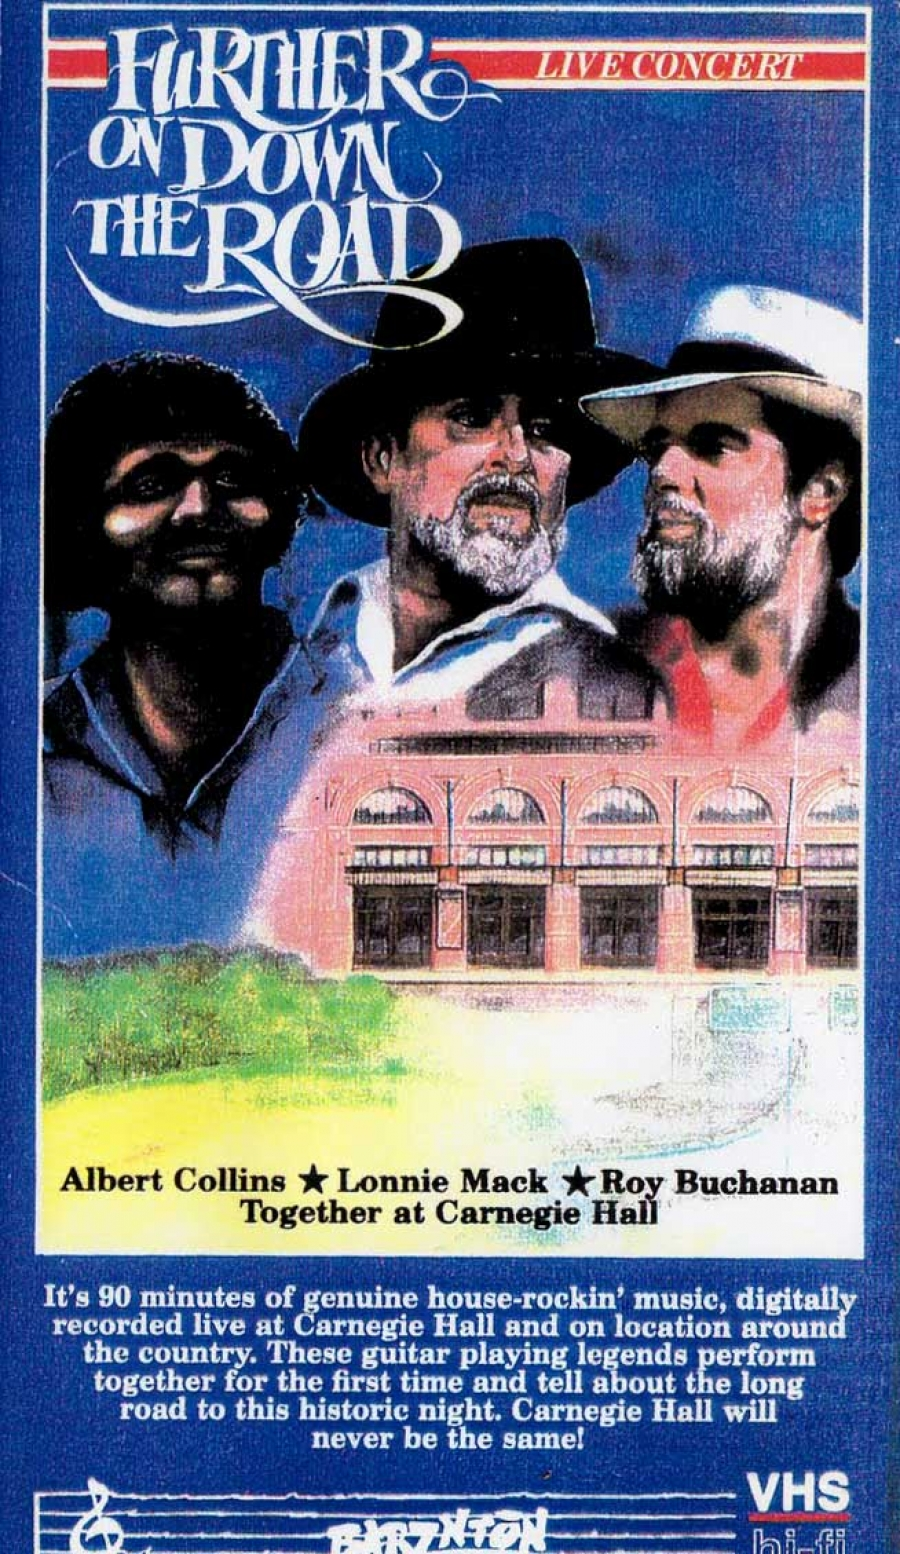 "MONUMENTS: ALBERT COLLINS / LONNIE MACK / ROY BUCHANAN ""Further Up on the Road"" DVD Concert (Praxis Media - 1988)"